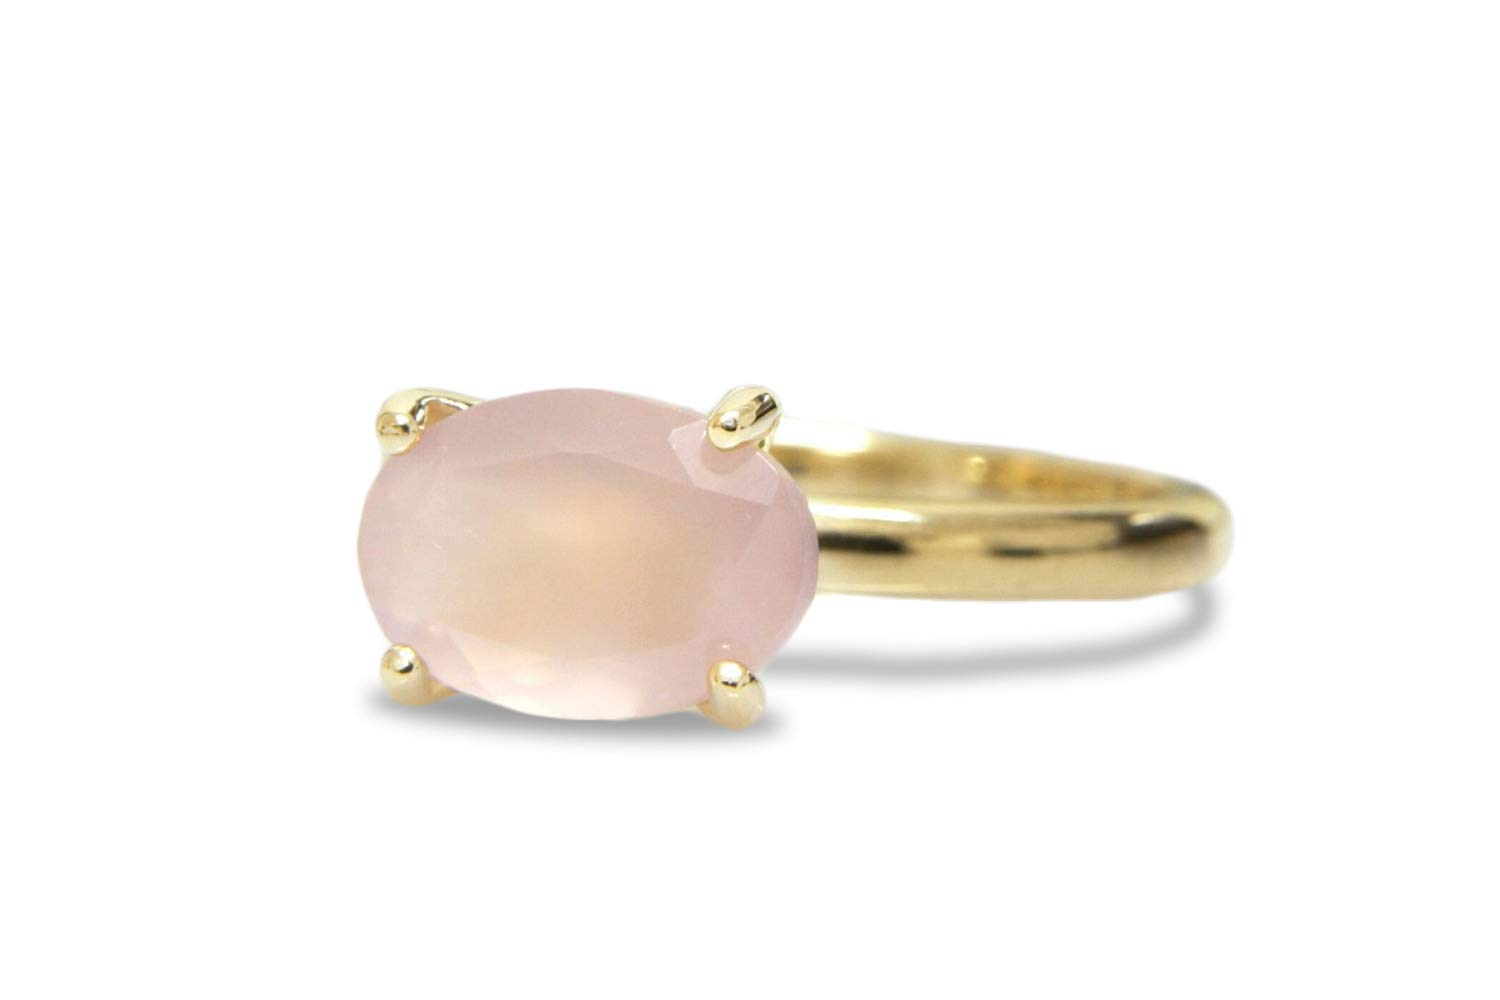 Handmade Jewelry with Box Promise Ring Solitaire Engagement Ring Anemone Unique Oval Rings for Women Birthstone Rings Rose Quartz in 14k Rose Gold